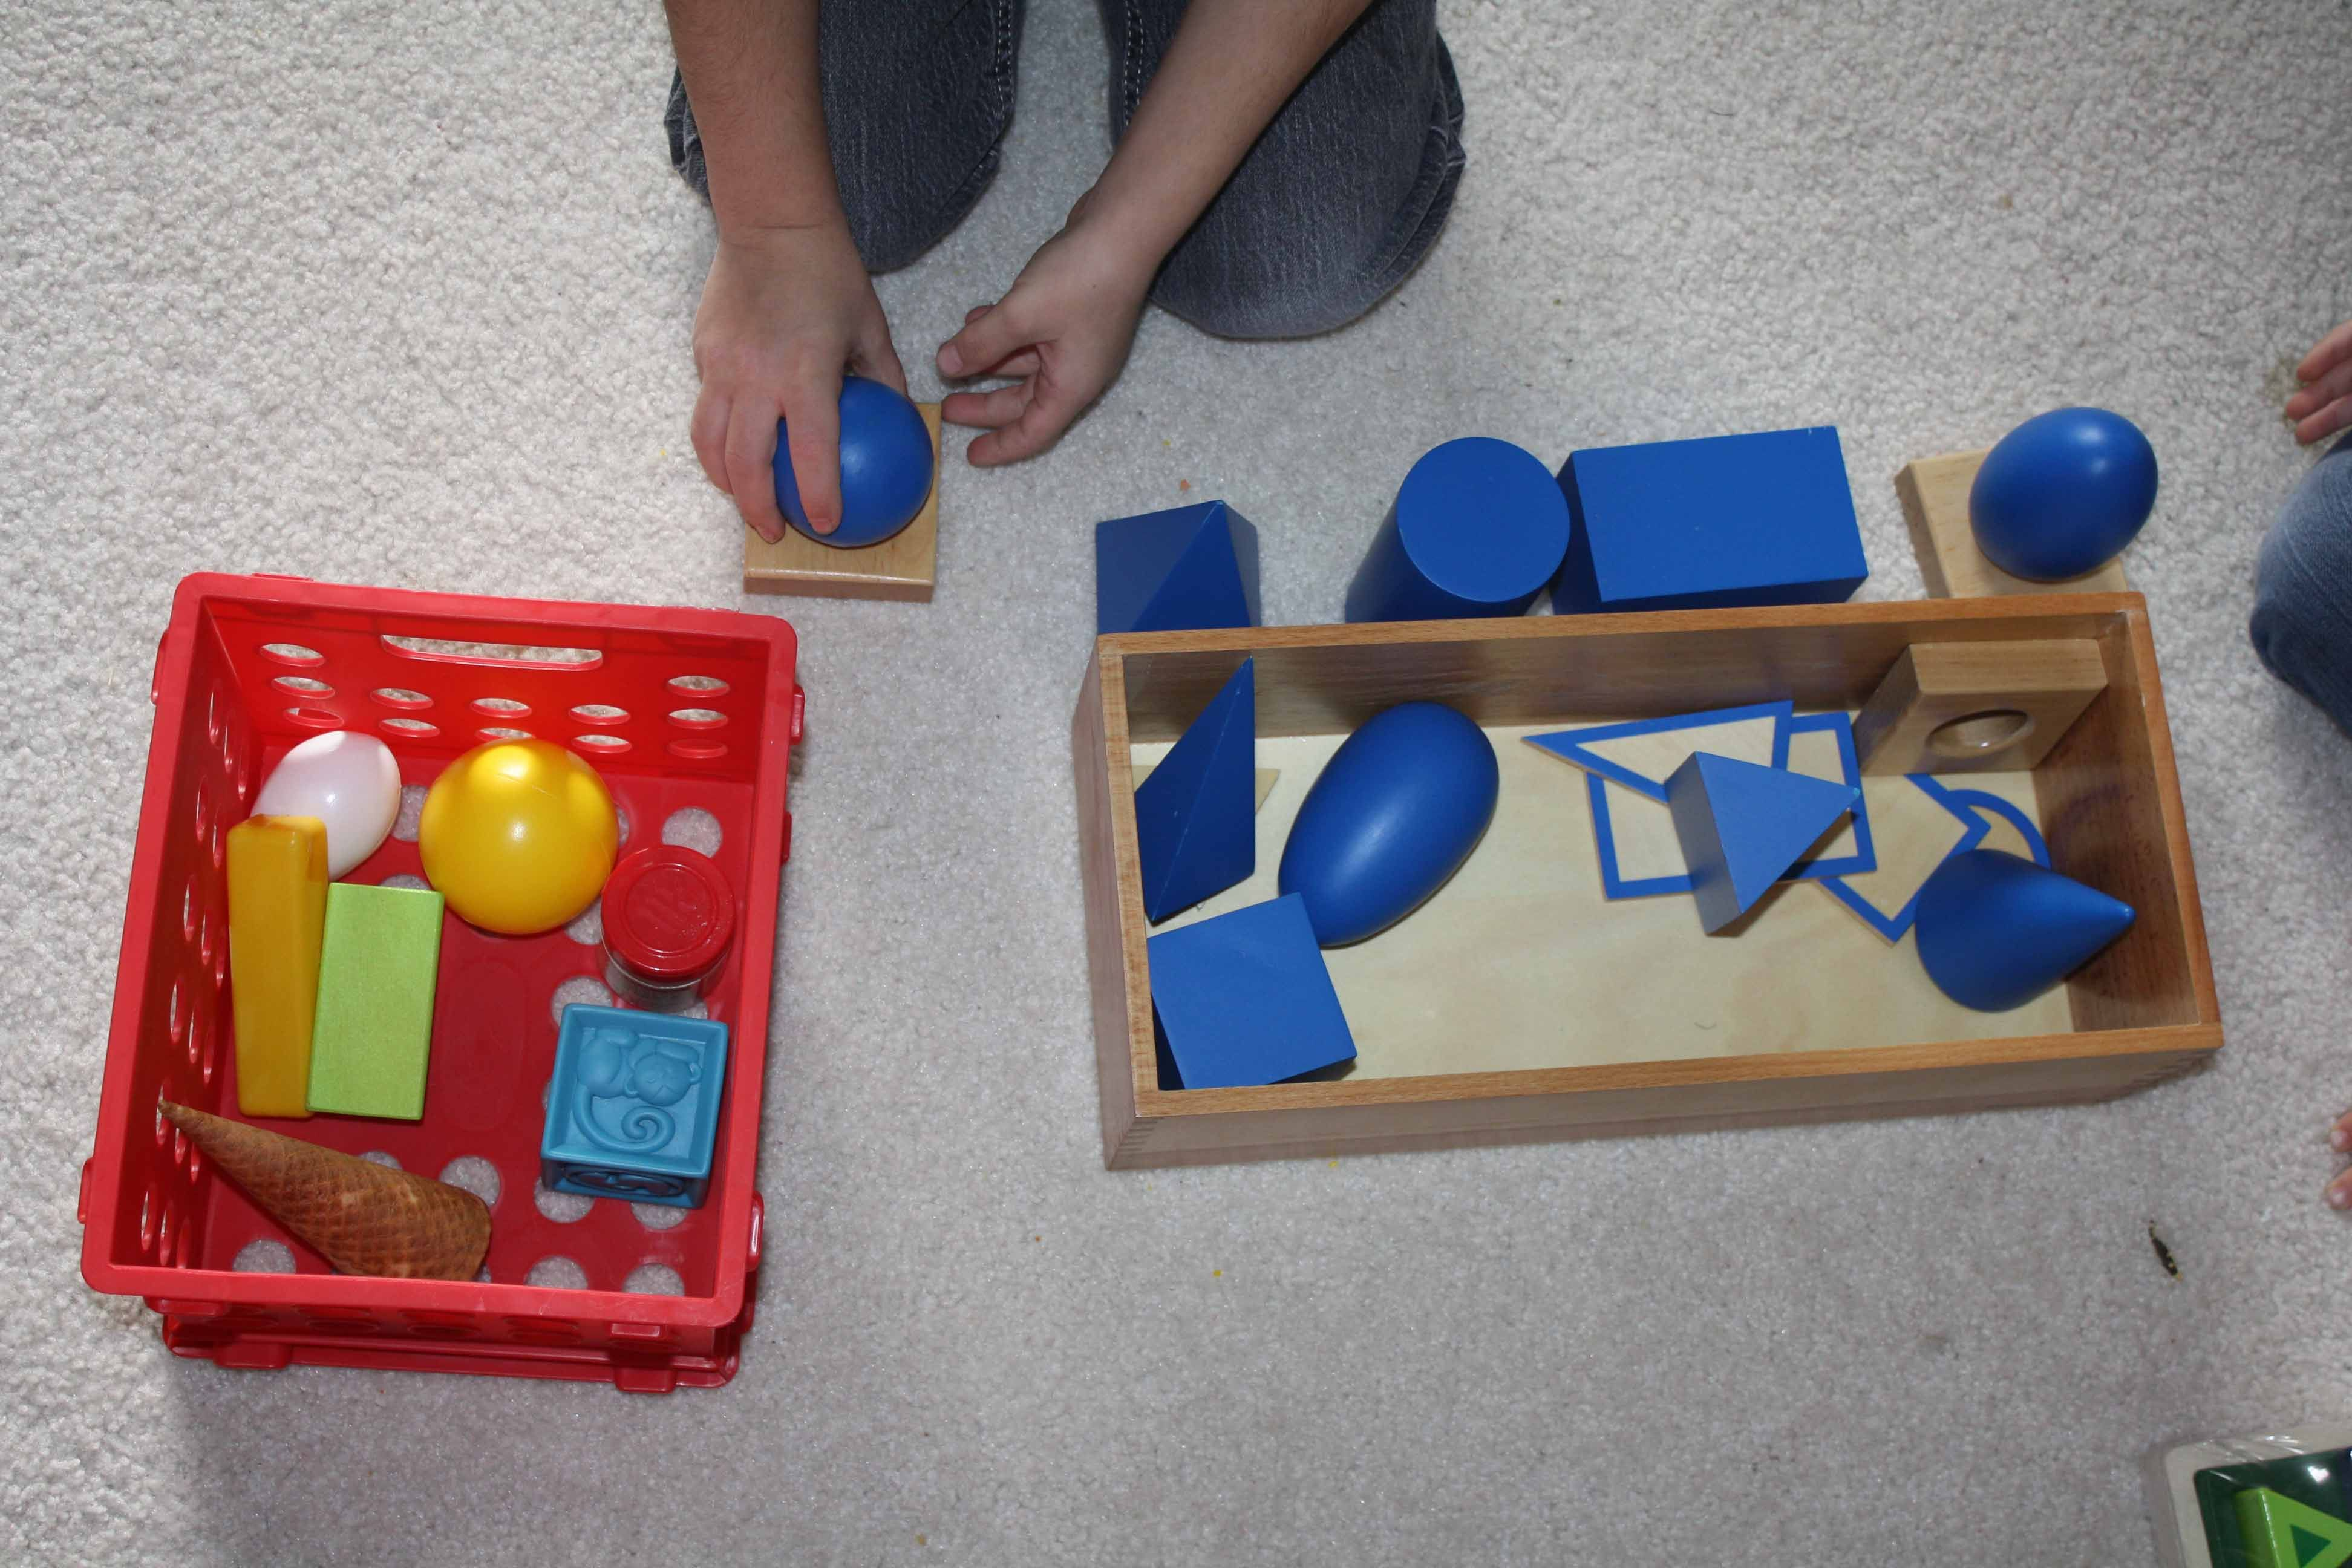 Matching Real Life Objects To The Geometric Solids From